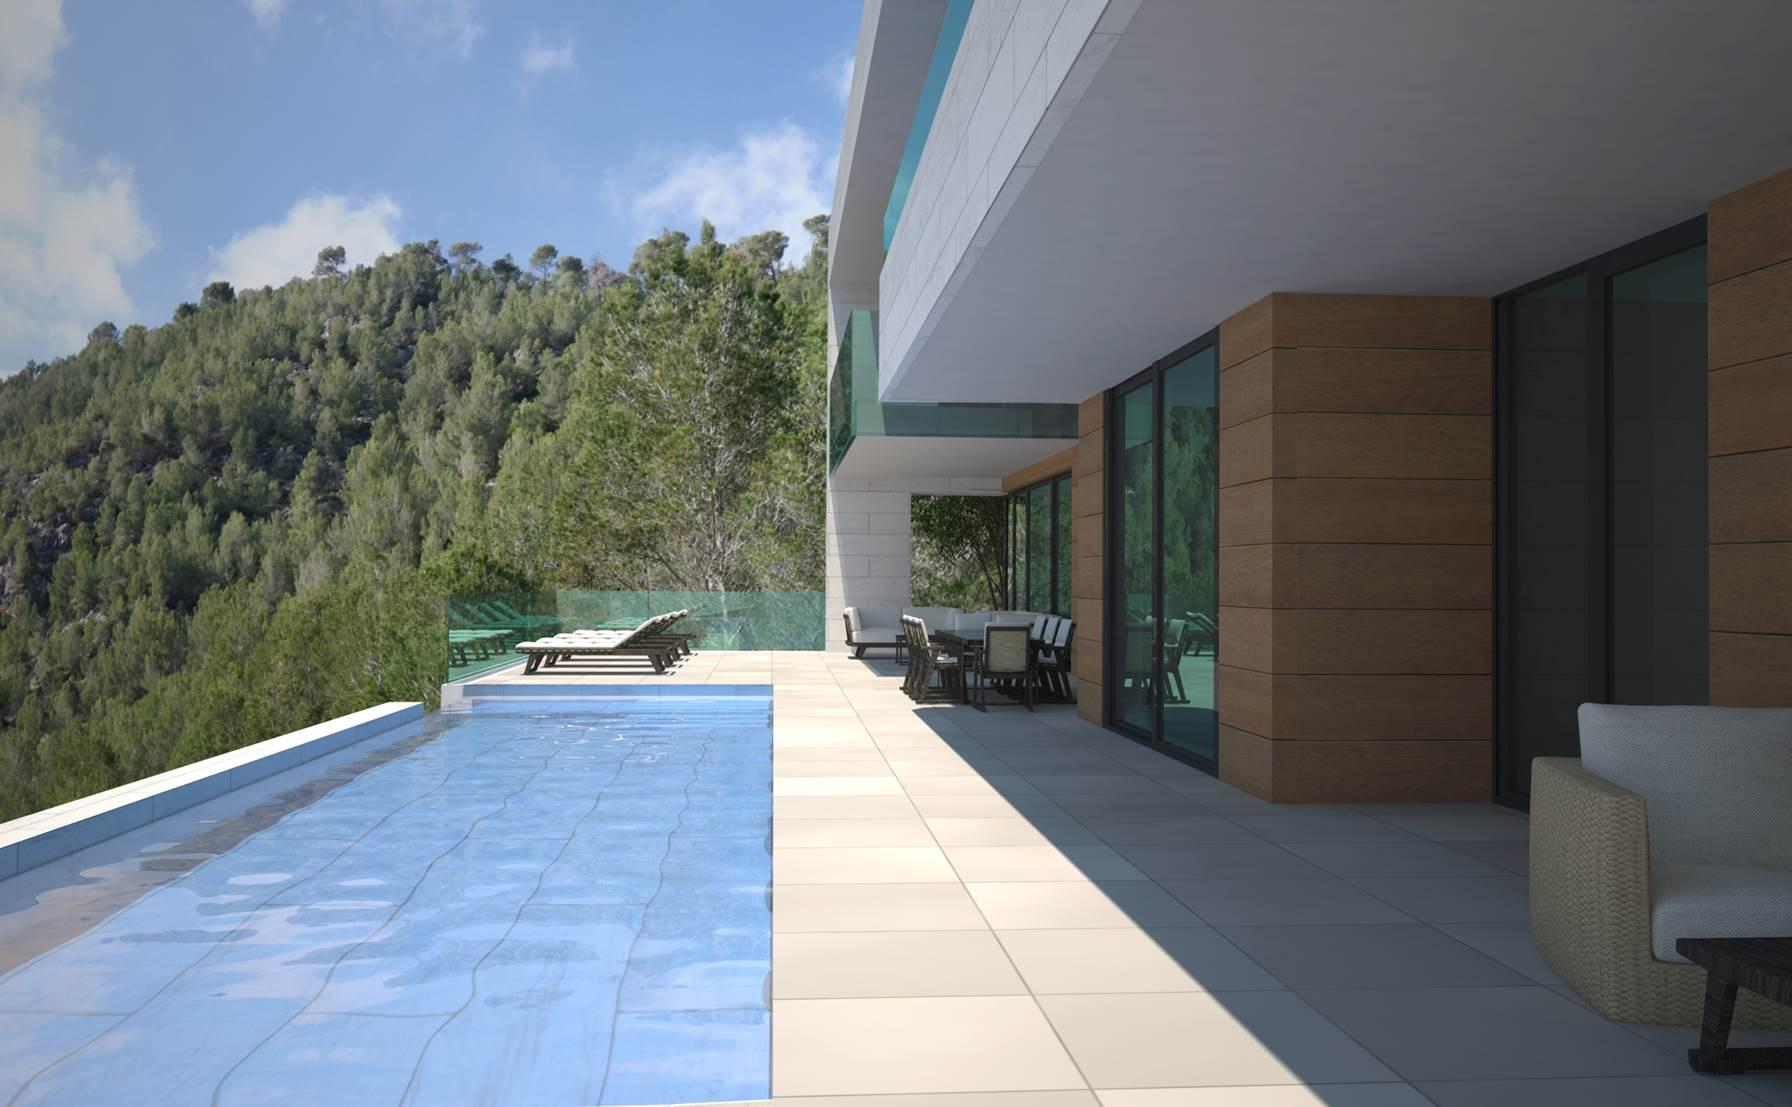 PMA-STUDIO-Son Vida 2-Architect-Mallorca-House-Project-Management-Architecture-02